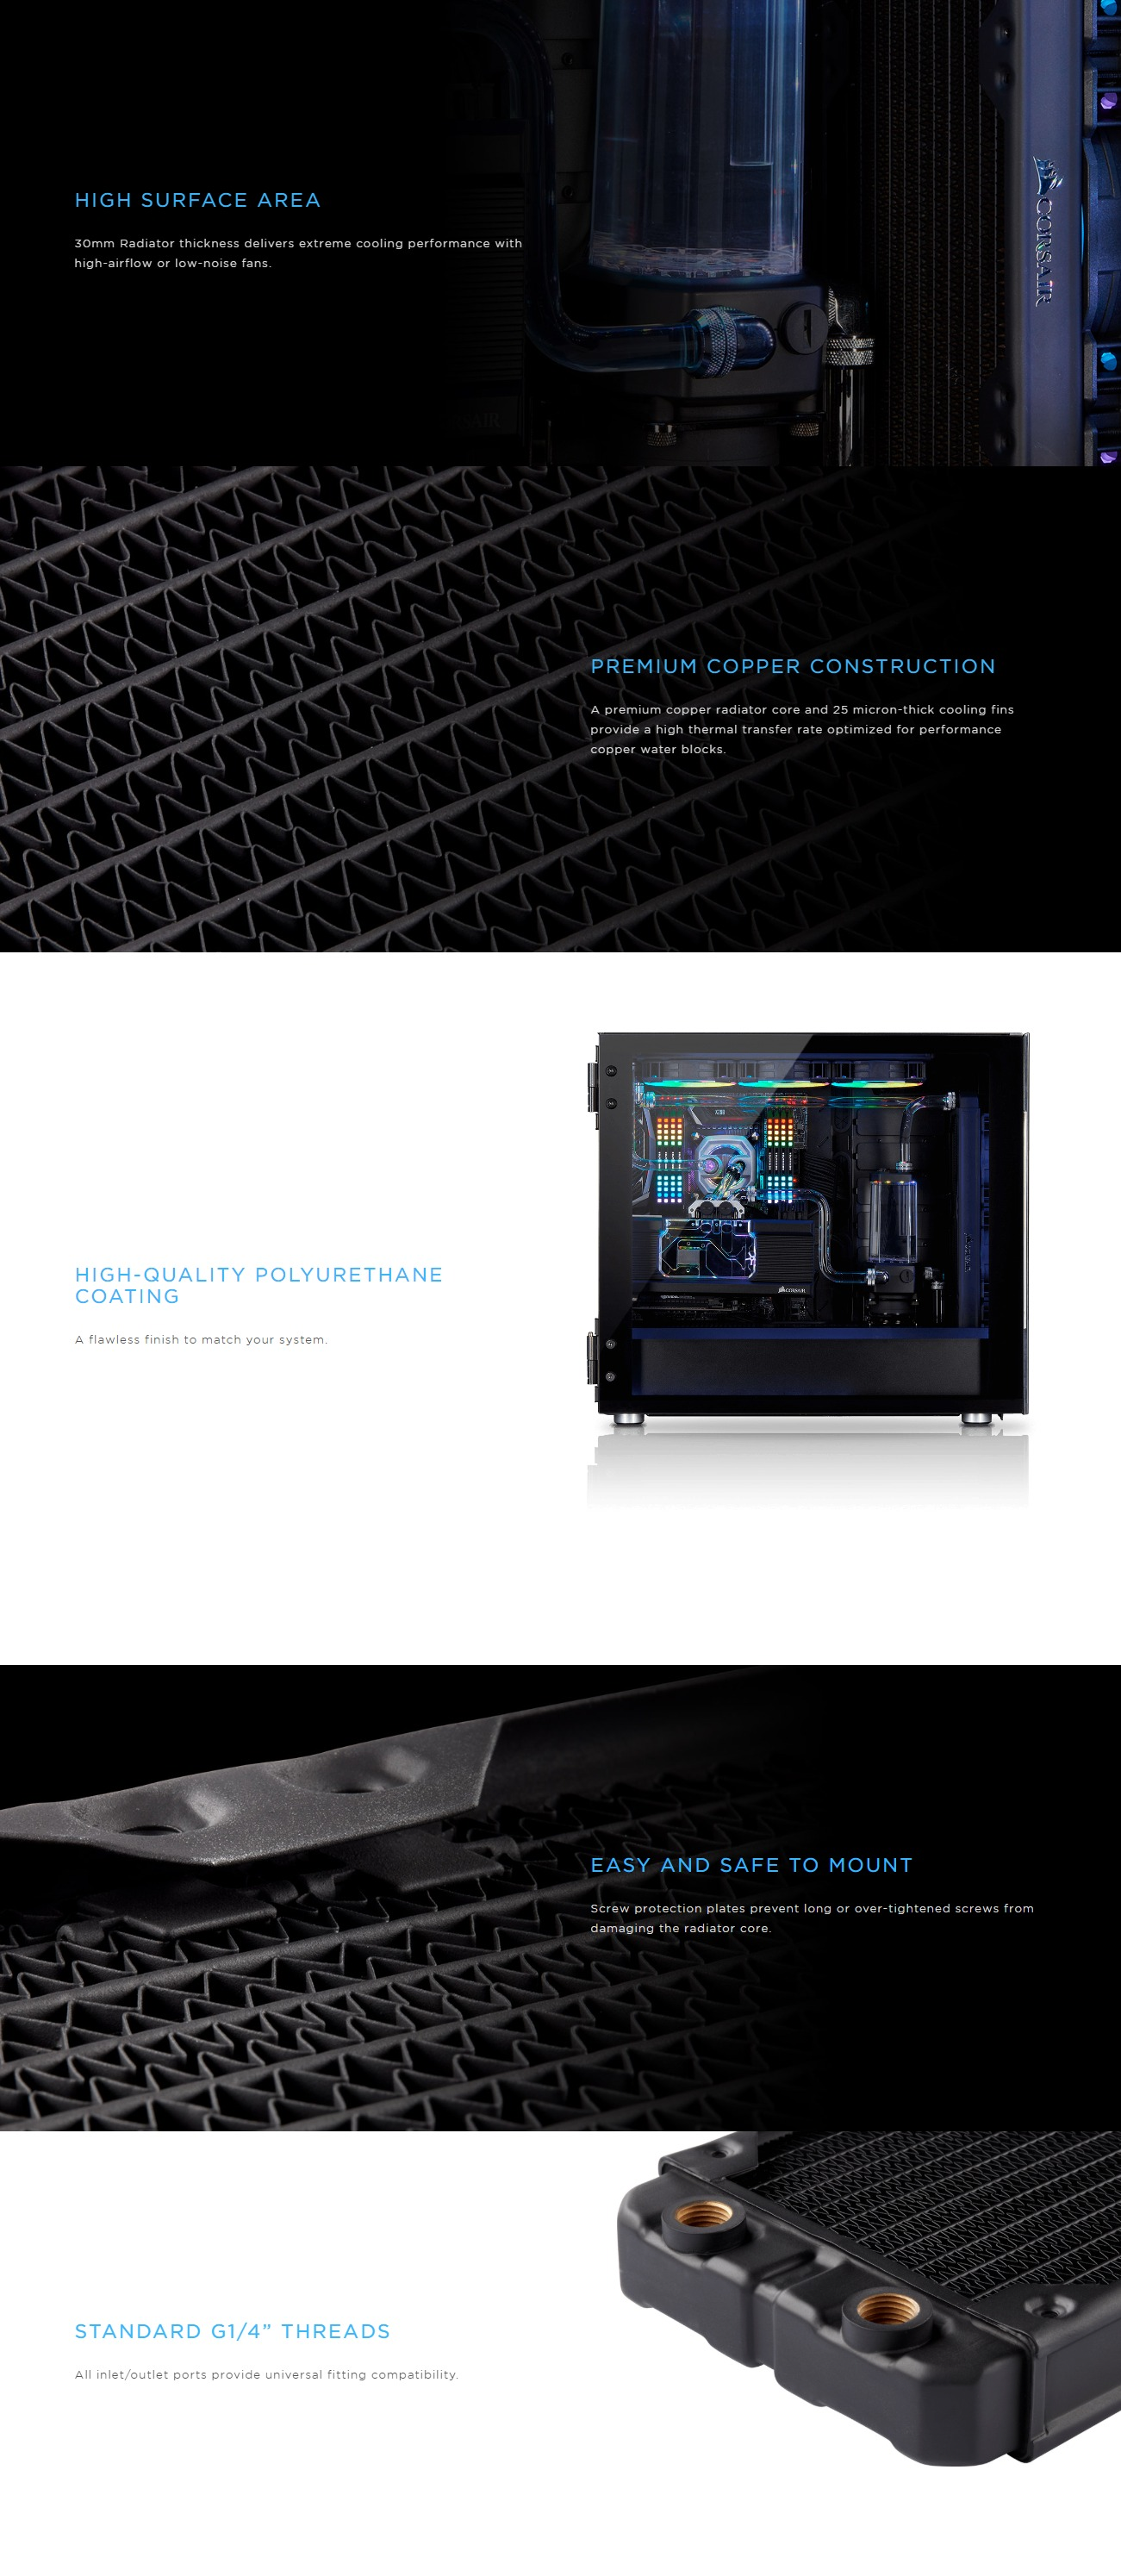 A large marketing image providing additional information about the product Corsair Hydro X Series XR5 140mm Radiator - Additional alt info not provided